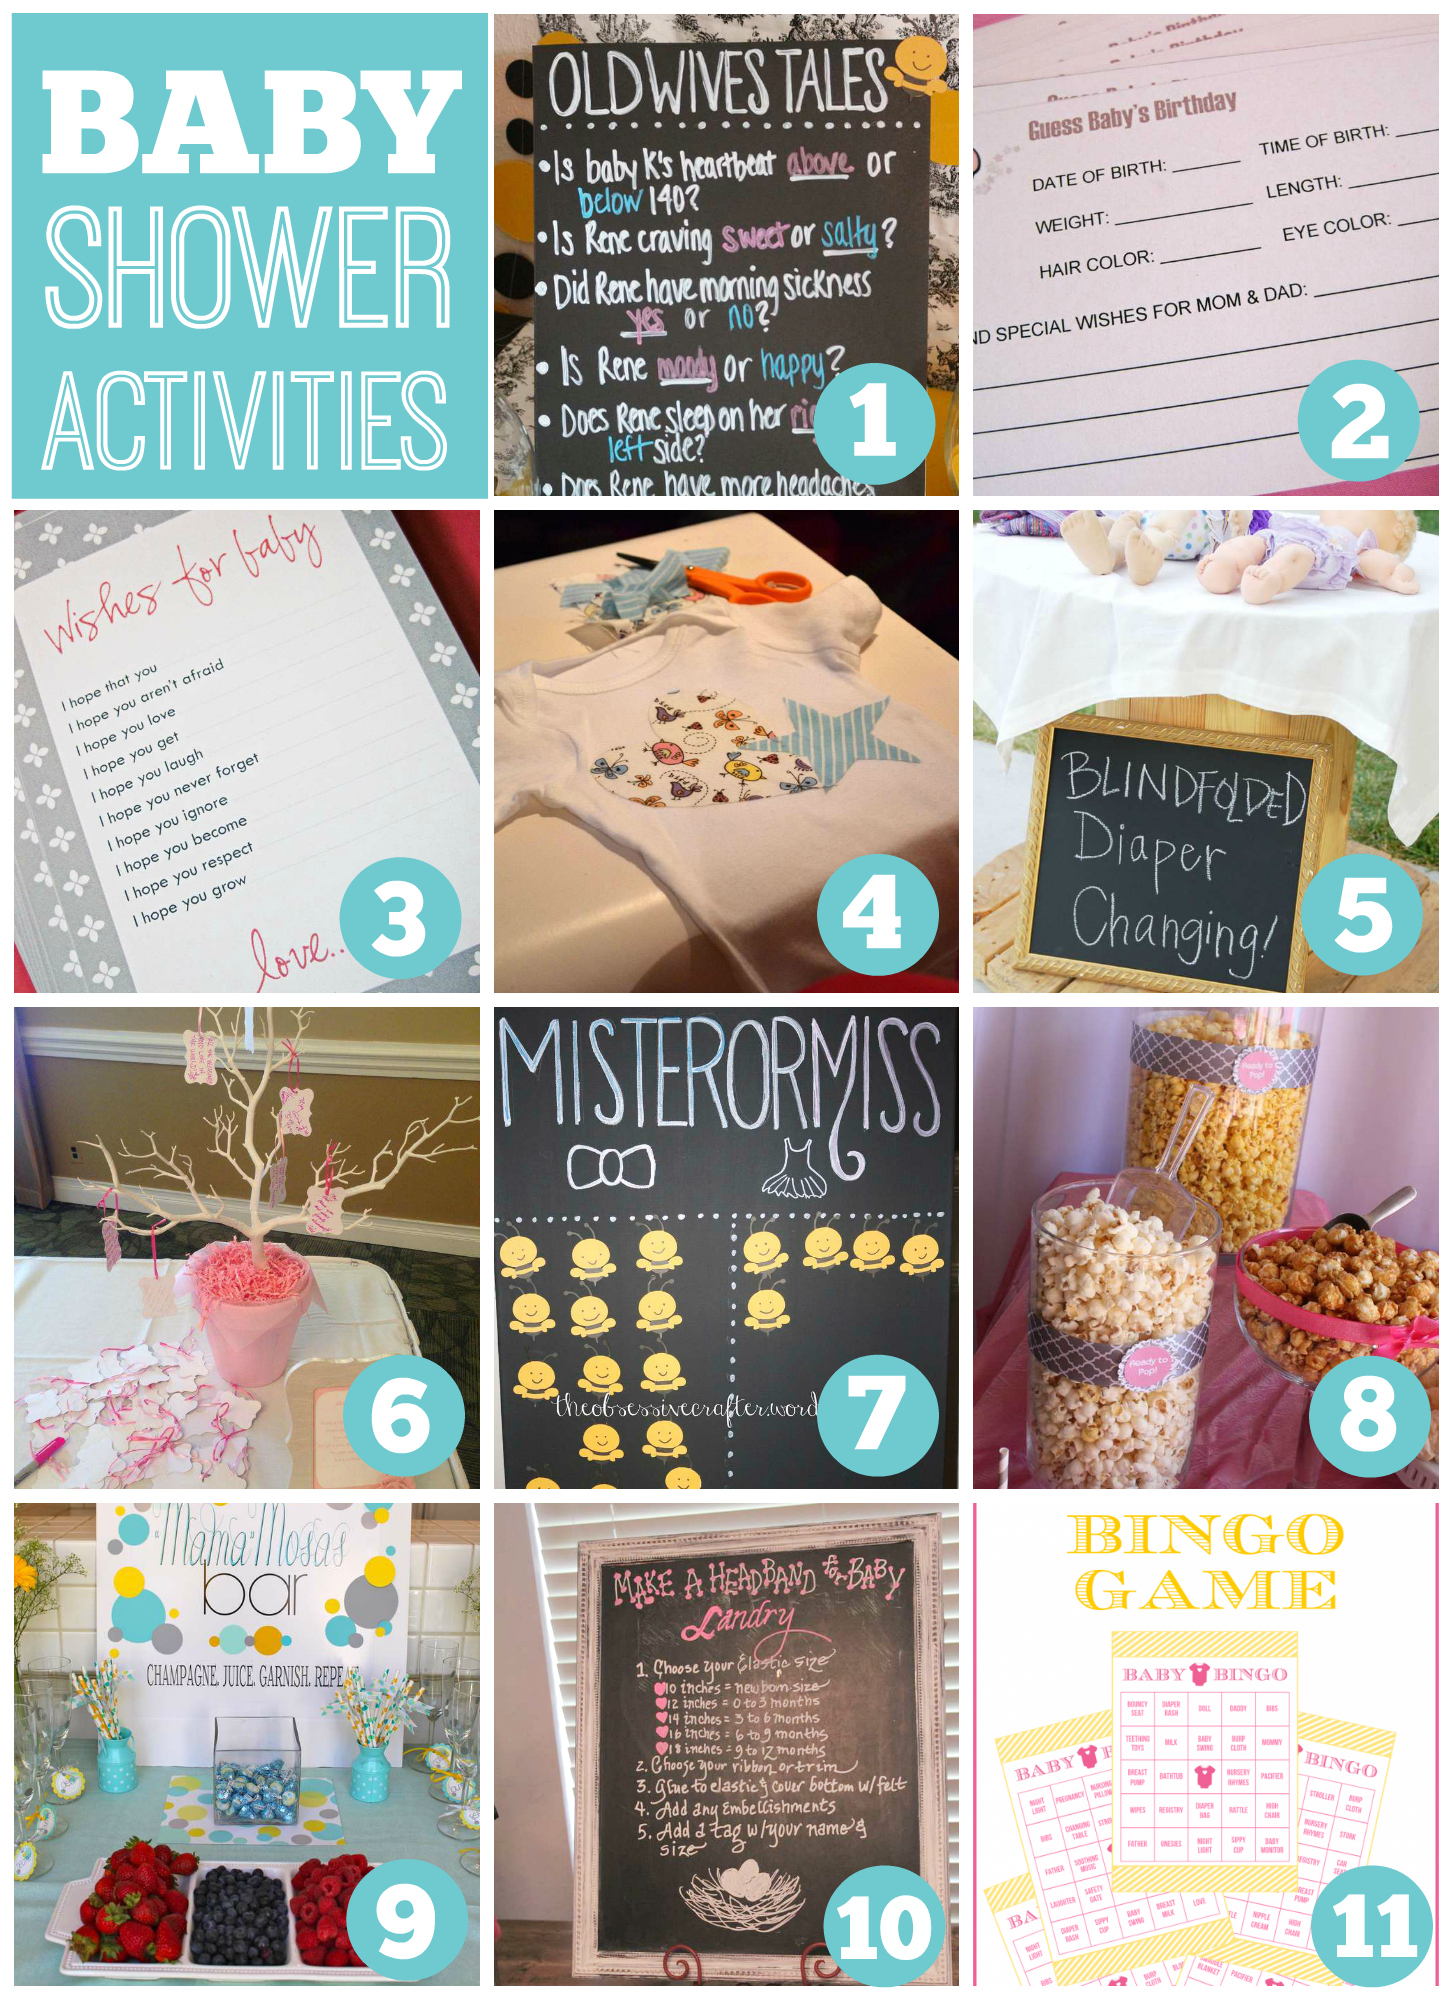 New My | Party Catch Baby Shower Activities 874